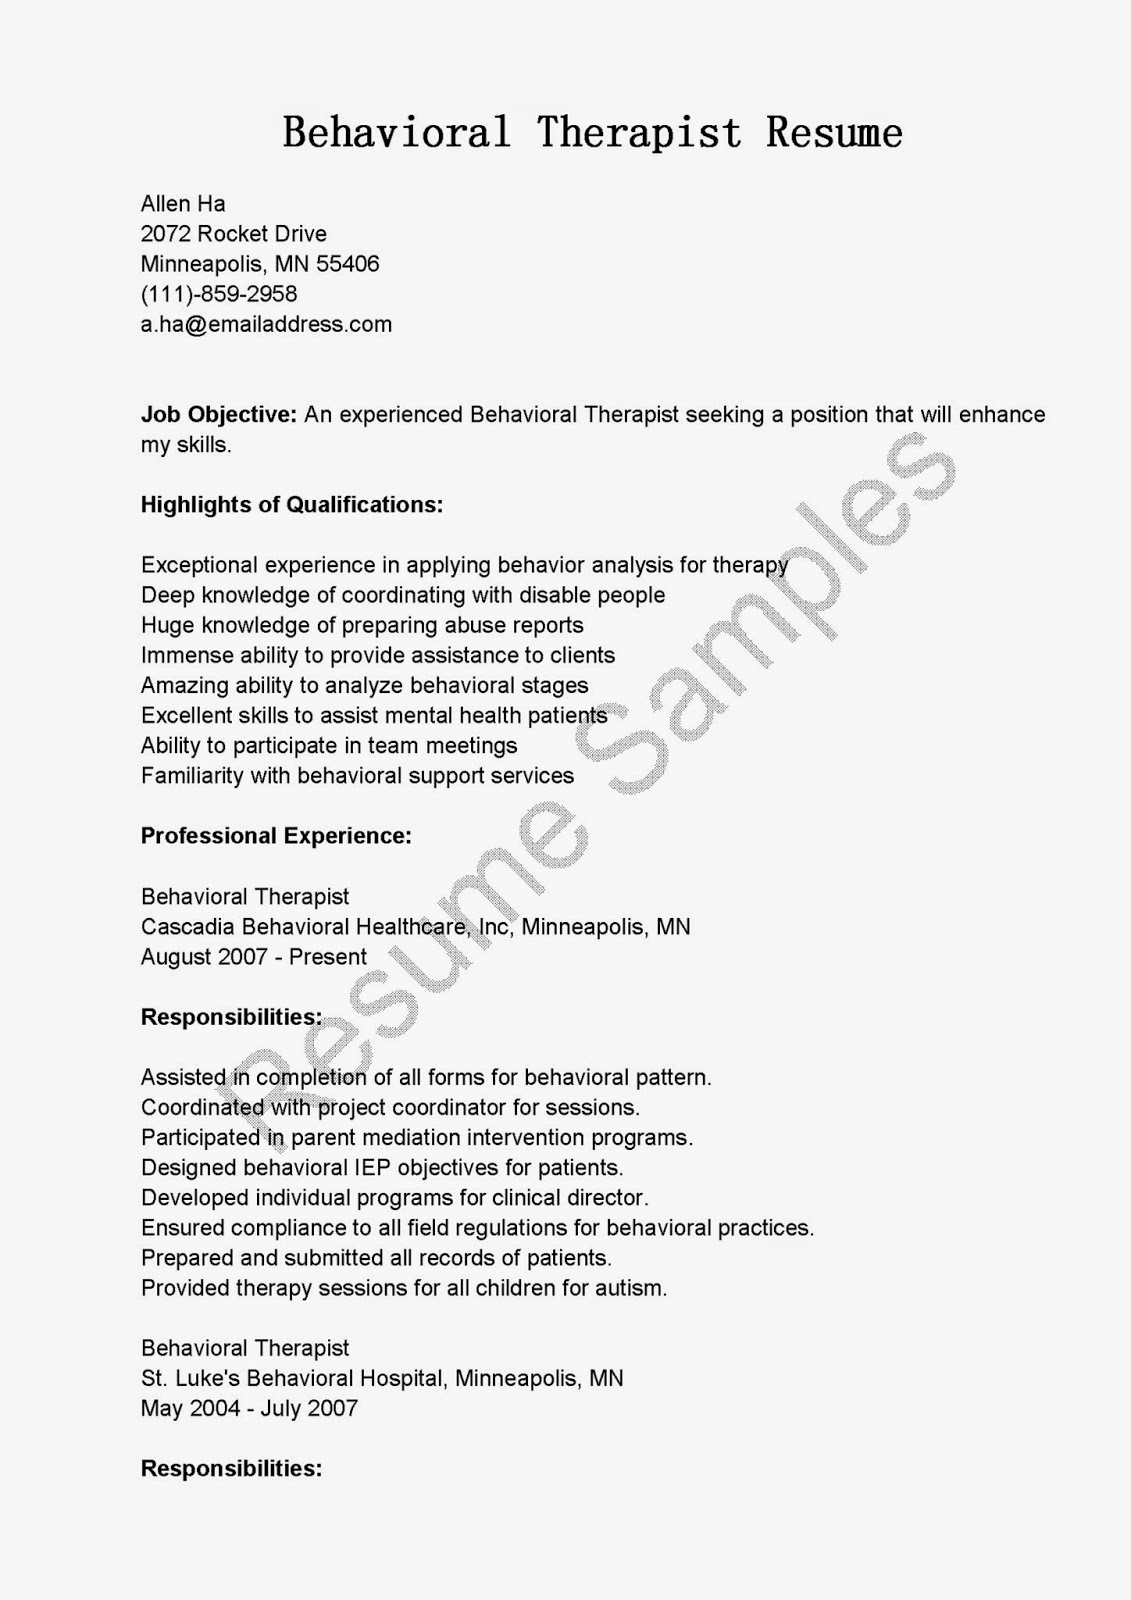 resume samples  behavioral therapist resume sample